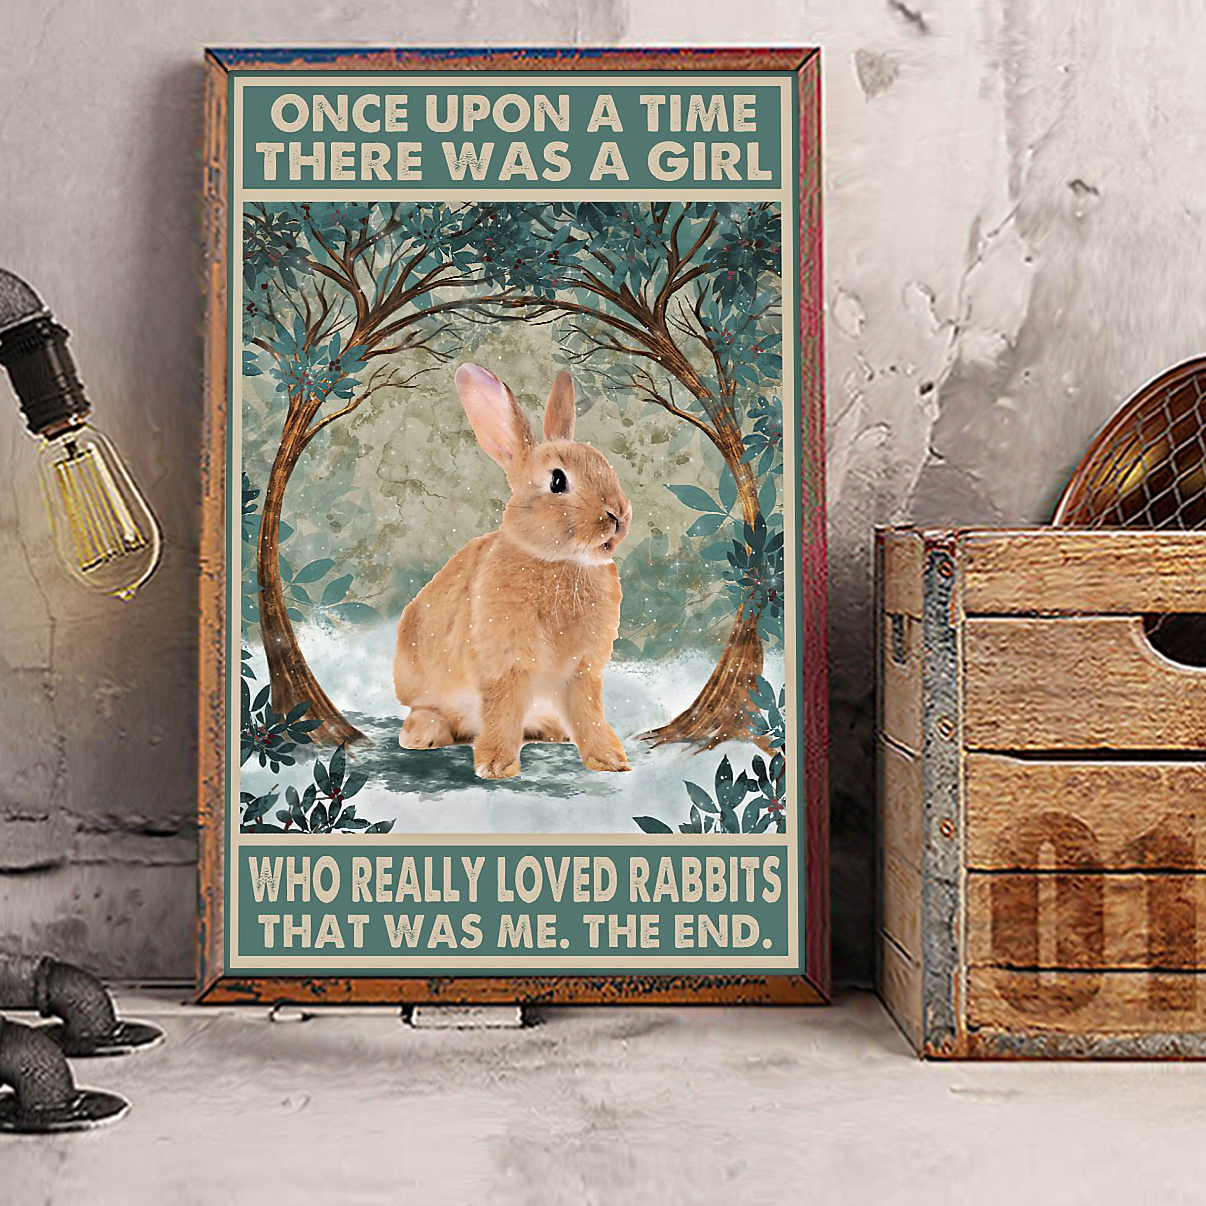 Rabbit once upon a time there was a girl who really loved rabbits poster A2